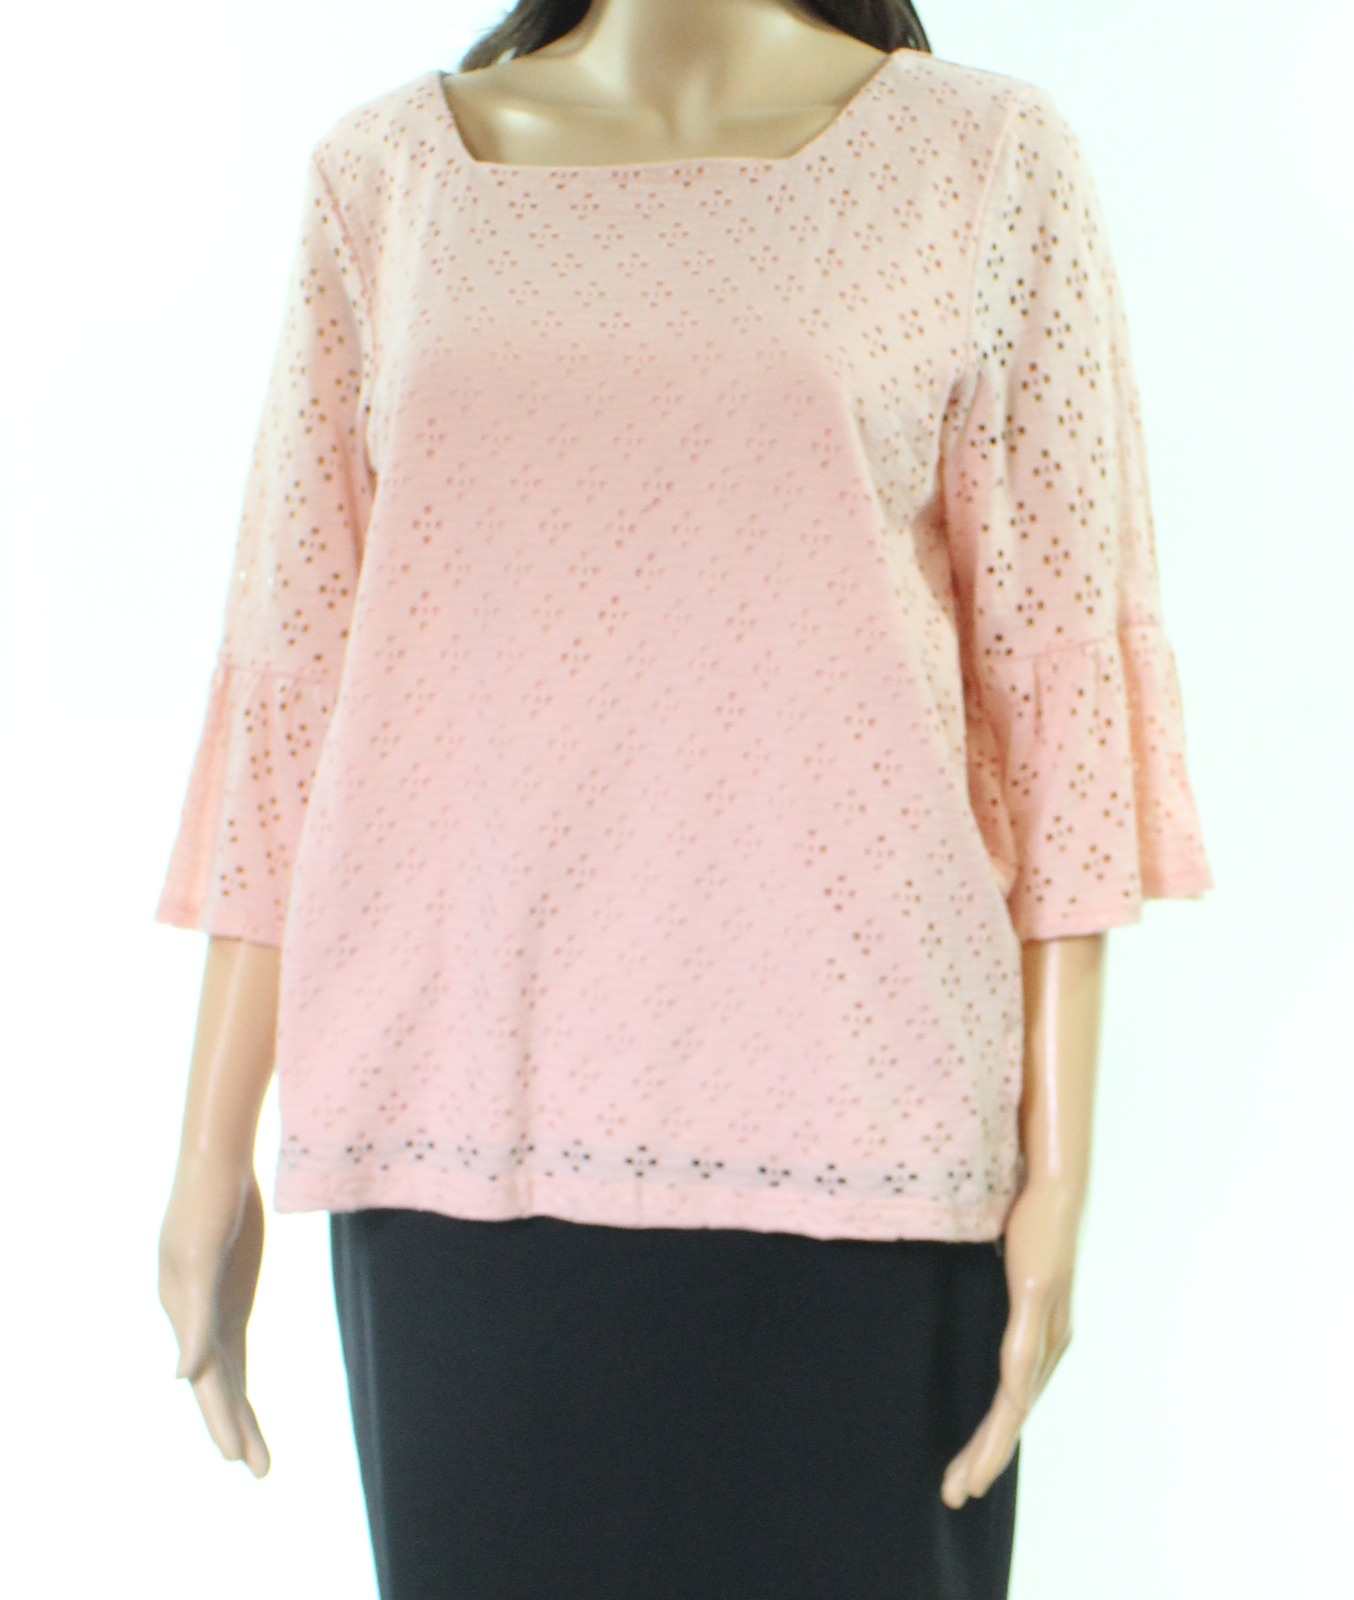 Leo-amp-Nicole-Women-039-s-Top-Blouse-Pink-Size-Medium-M-Eyelet-Square-Neck